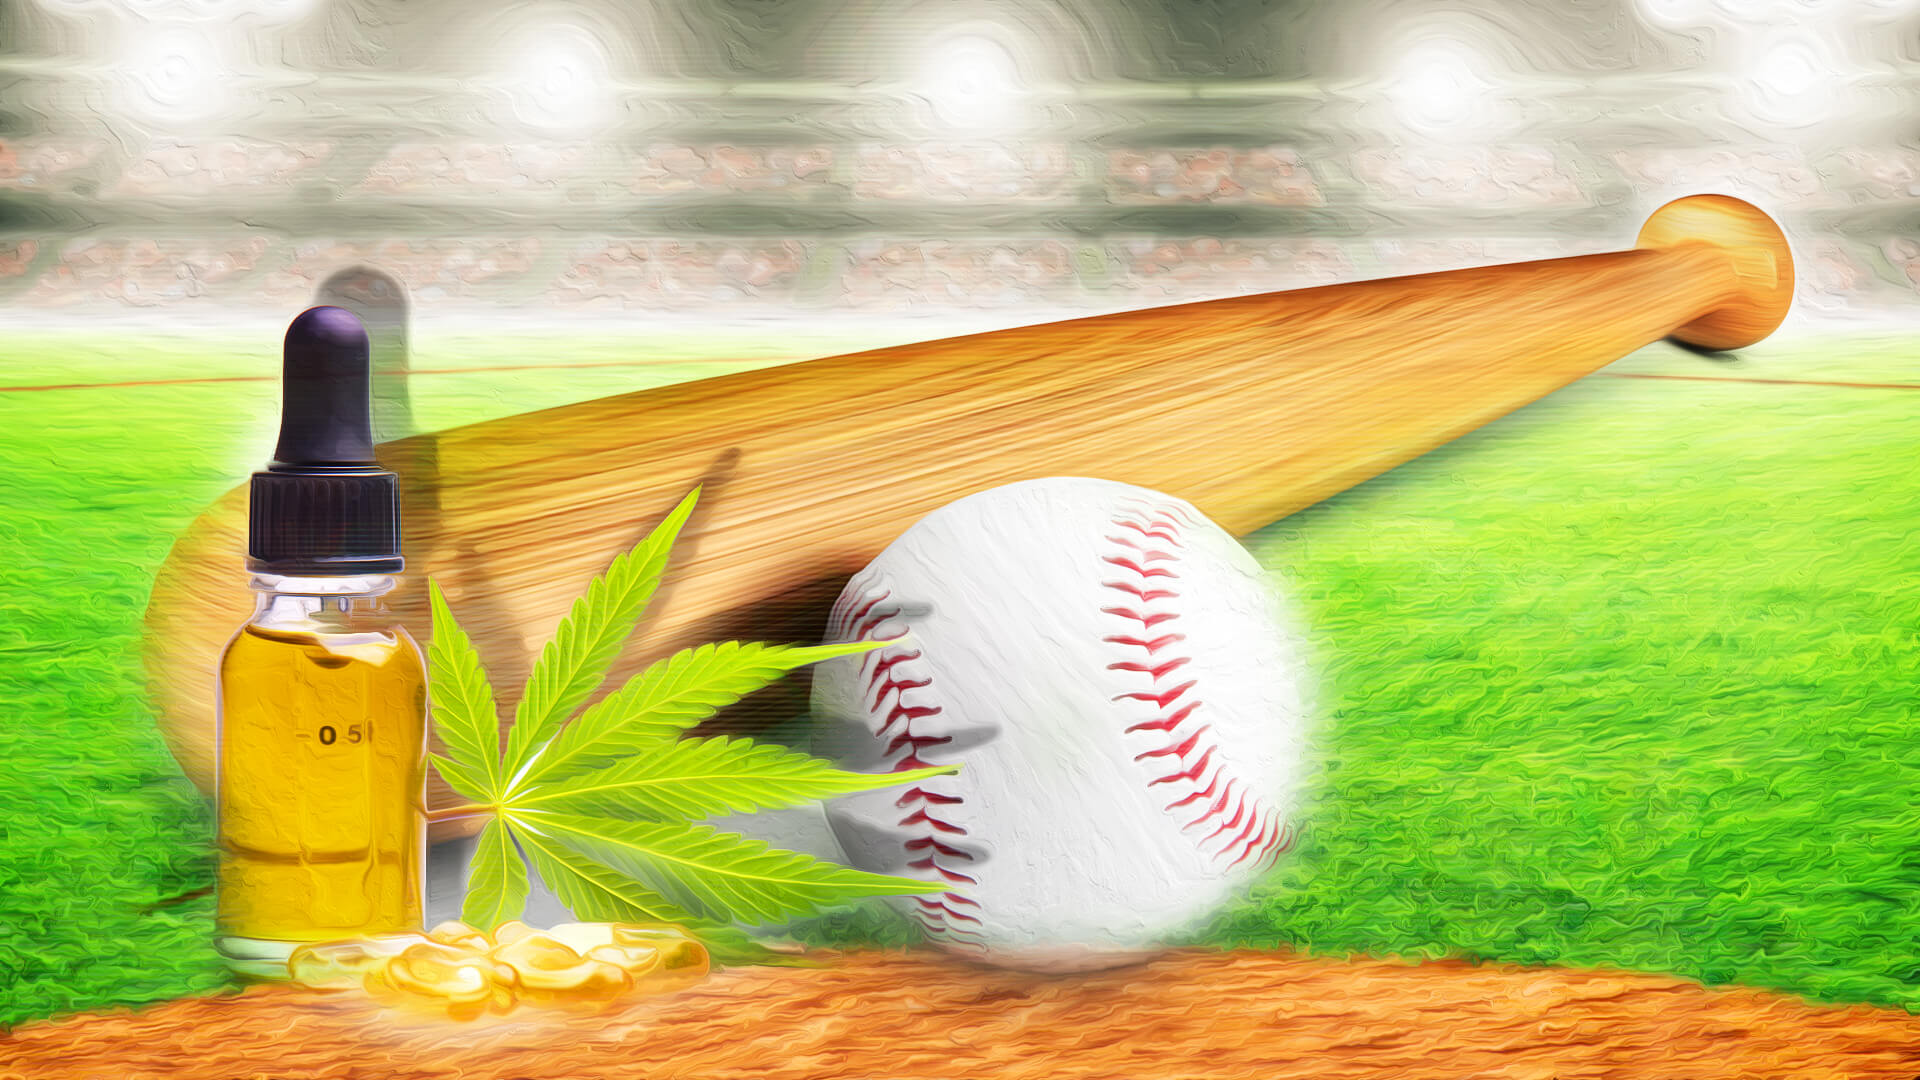 a Baseball, bat and cannabis leaf.